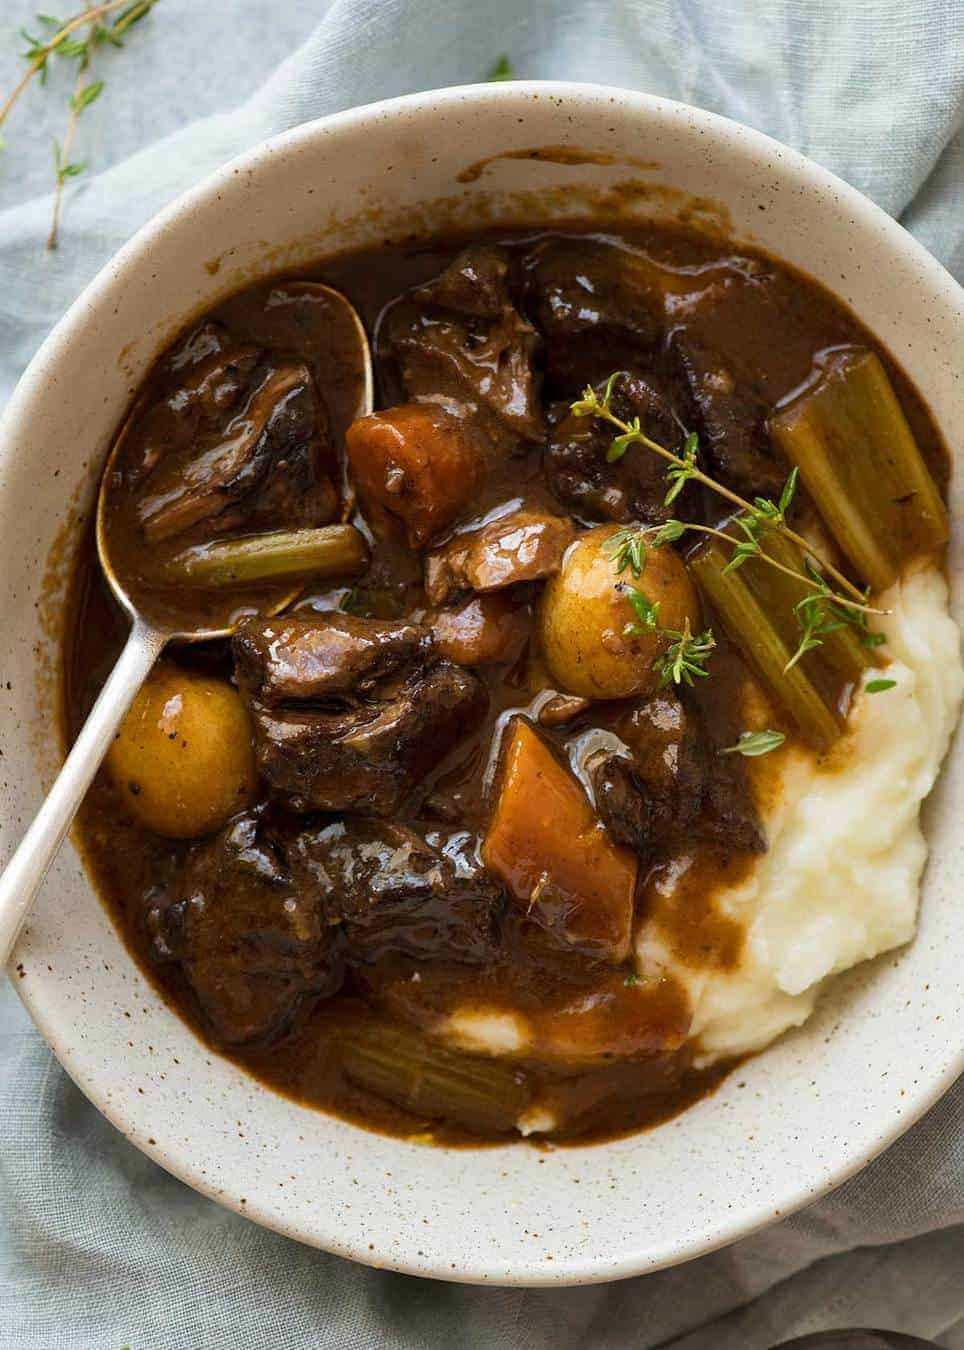 Overhead photo of Beef Stew over mashed potato in a rustic cream bowl.